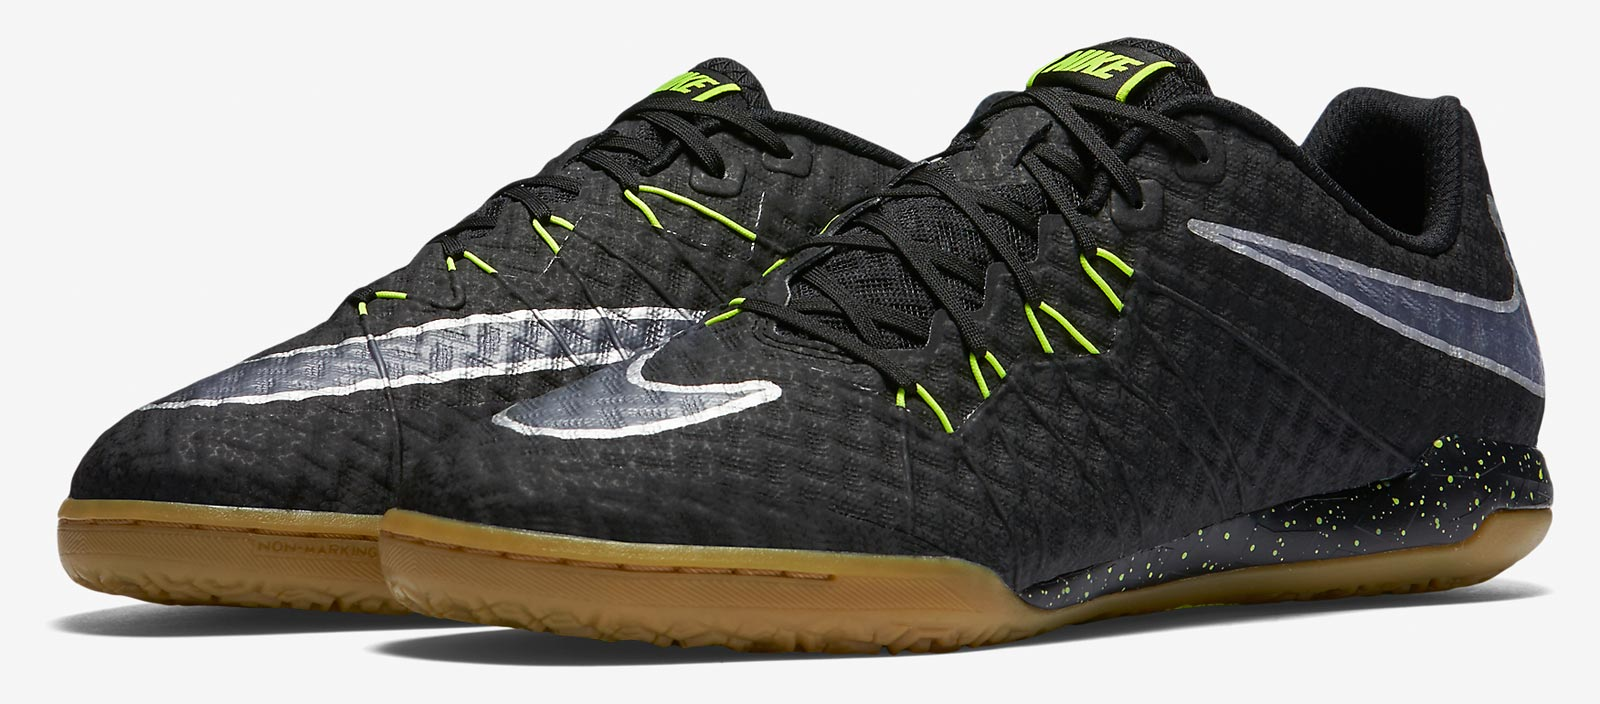 Black Nike HypervenomX Finale 2016 Boots Revealed - Footy ...